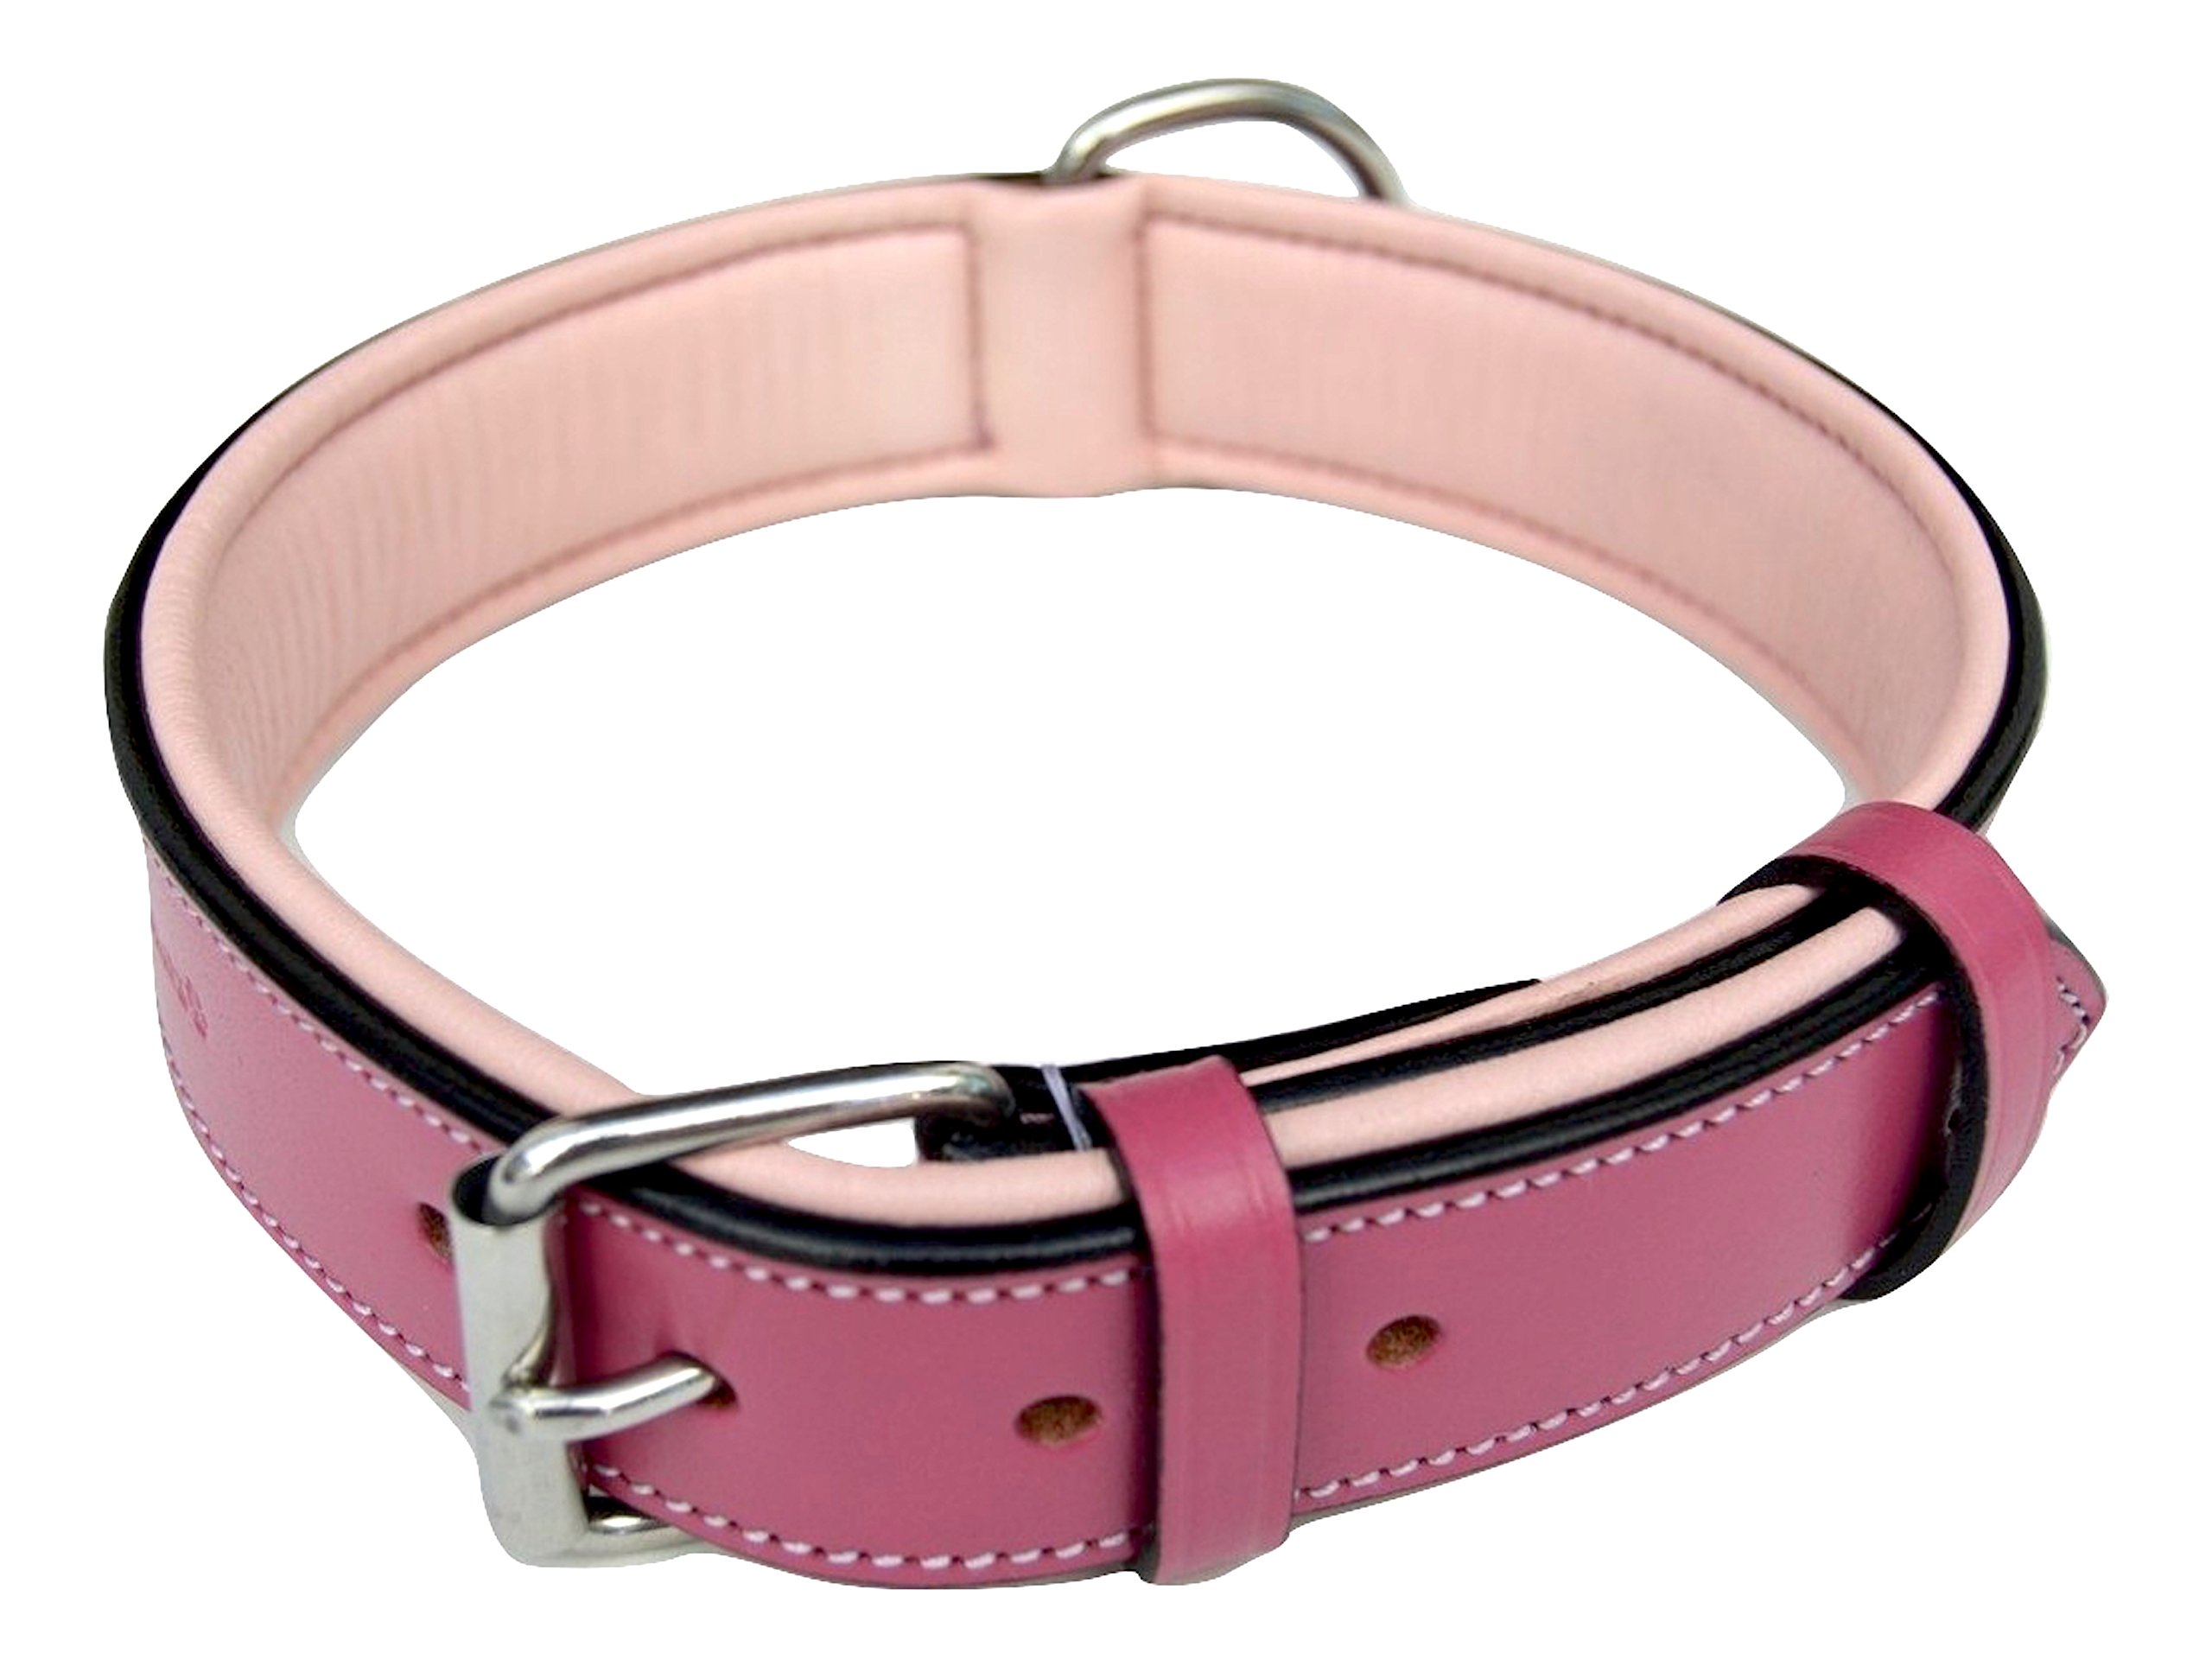 Soft Touch Collars Raspberry Pink Leather Padded Dog Collar, for Large Female Dogs, Made with Genuine Real Leather, 24'' Long x 1.5'' Wide